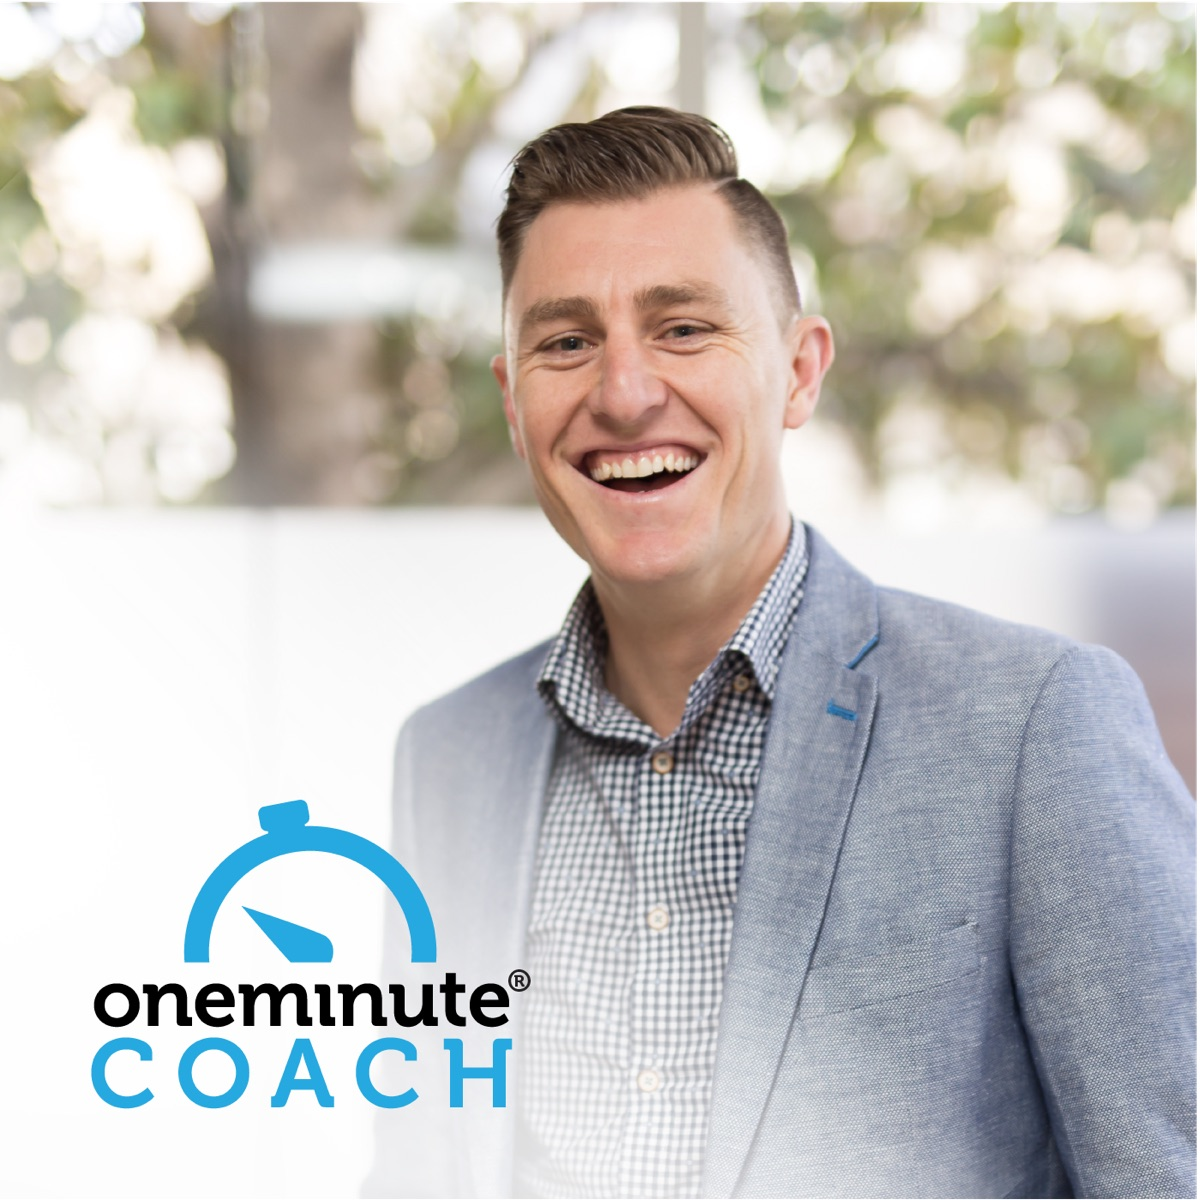 One Minute Coach®